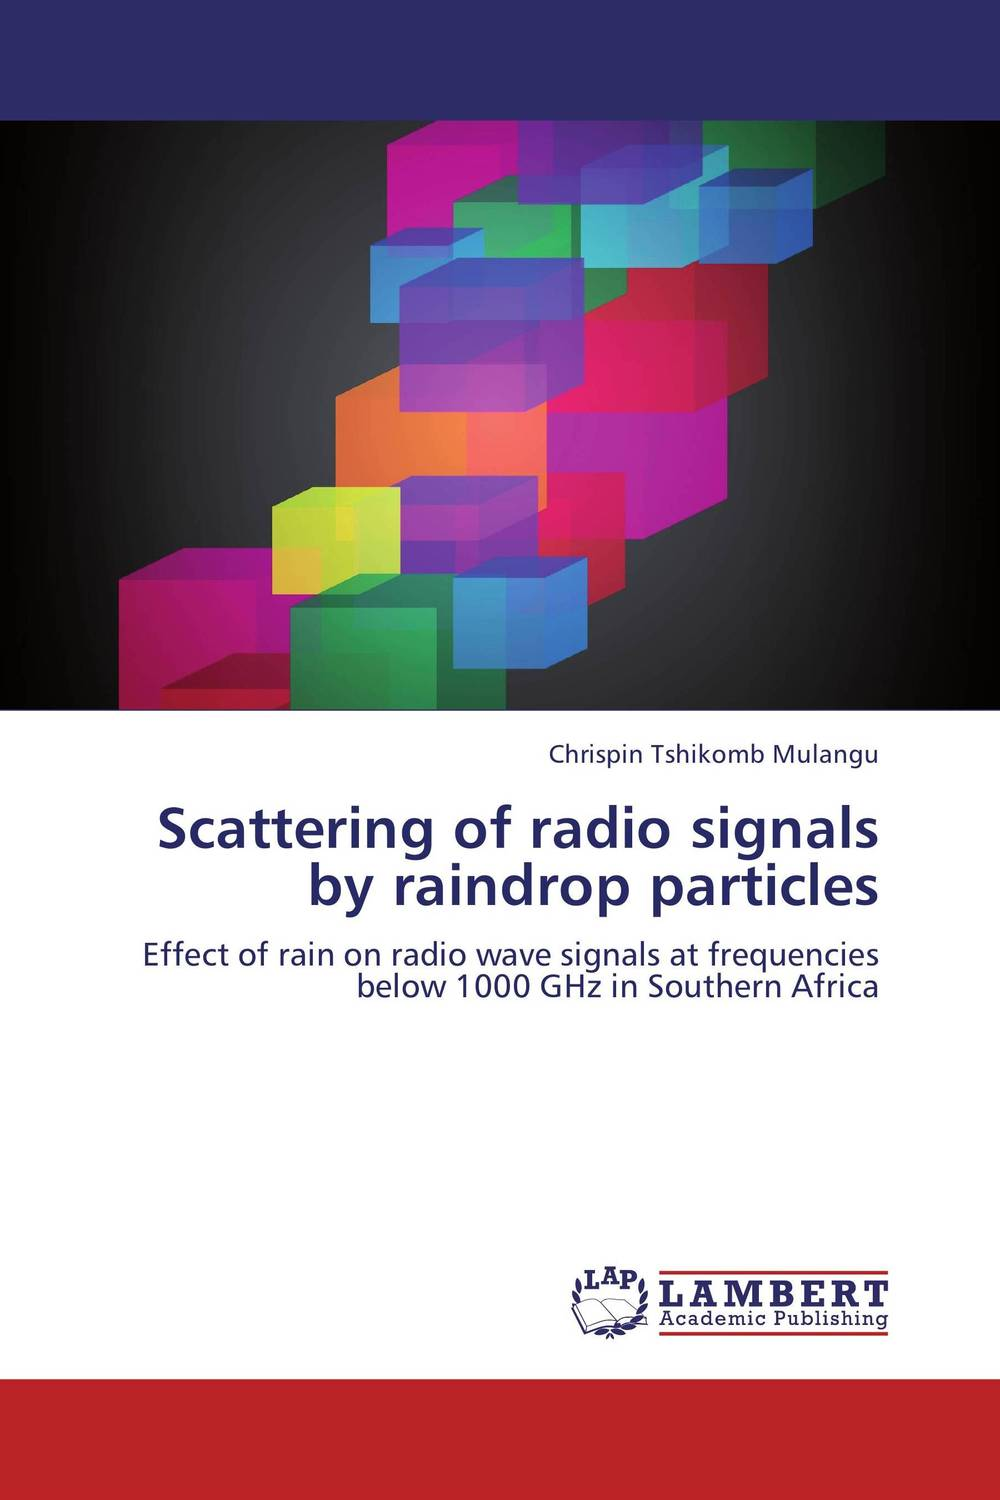 Scattering of radio signals by raindrop particles arcade ndoricimpa inflation output growth and their uncertainties in south africa empirical evidence from an asymmetric multivariate garch m model